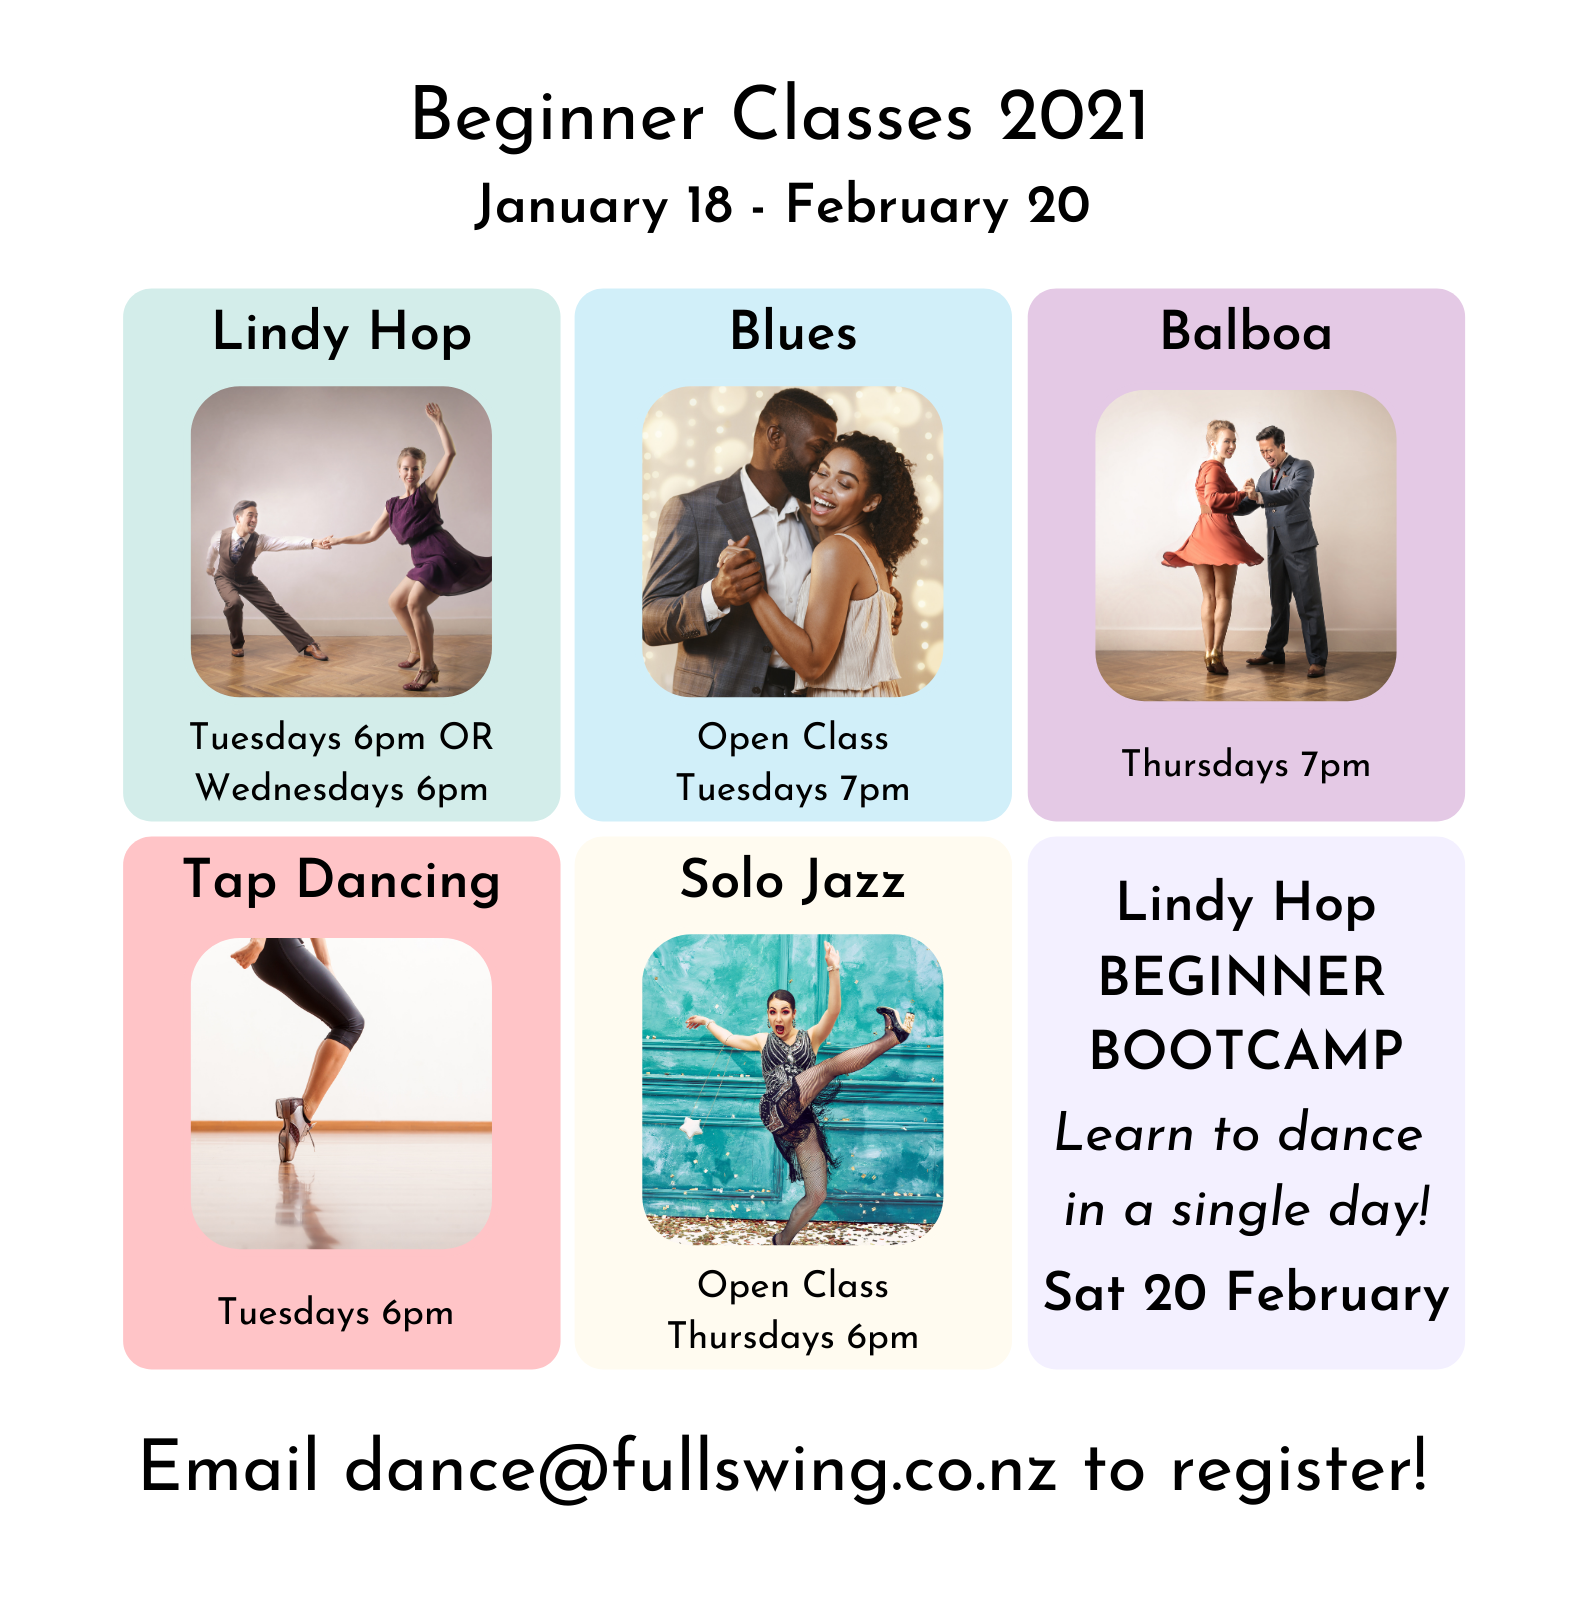 Beginner timetable information (in text below) with images of dancers dancing each style